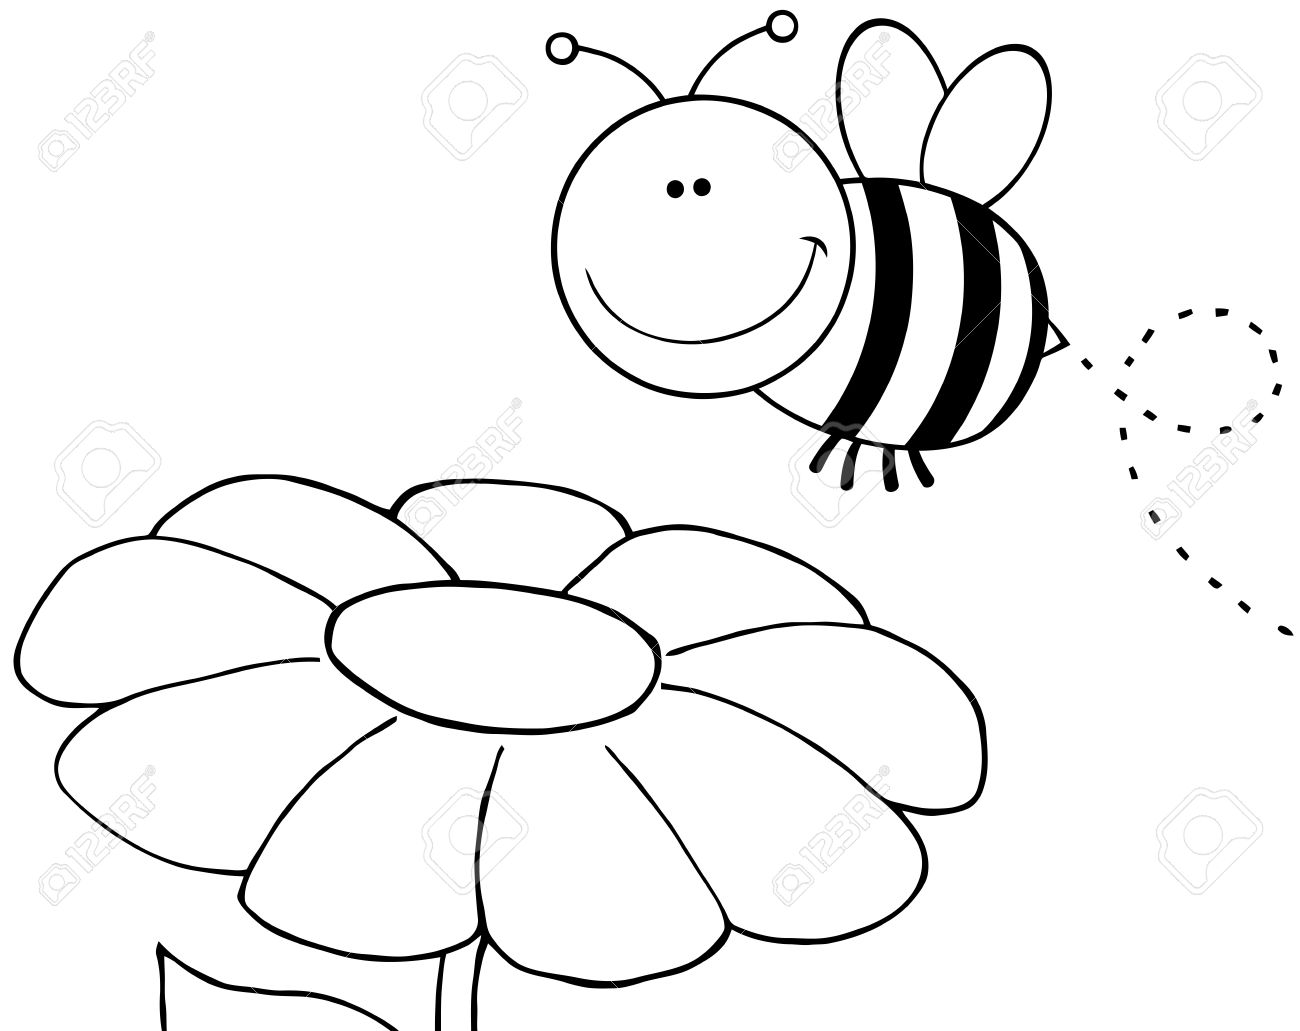 Outlined Bumble Bee Flying Over Flower Royalty Free Cliparts.